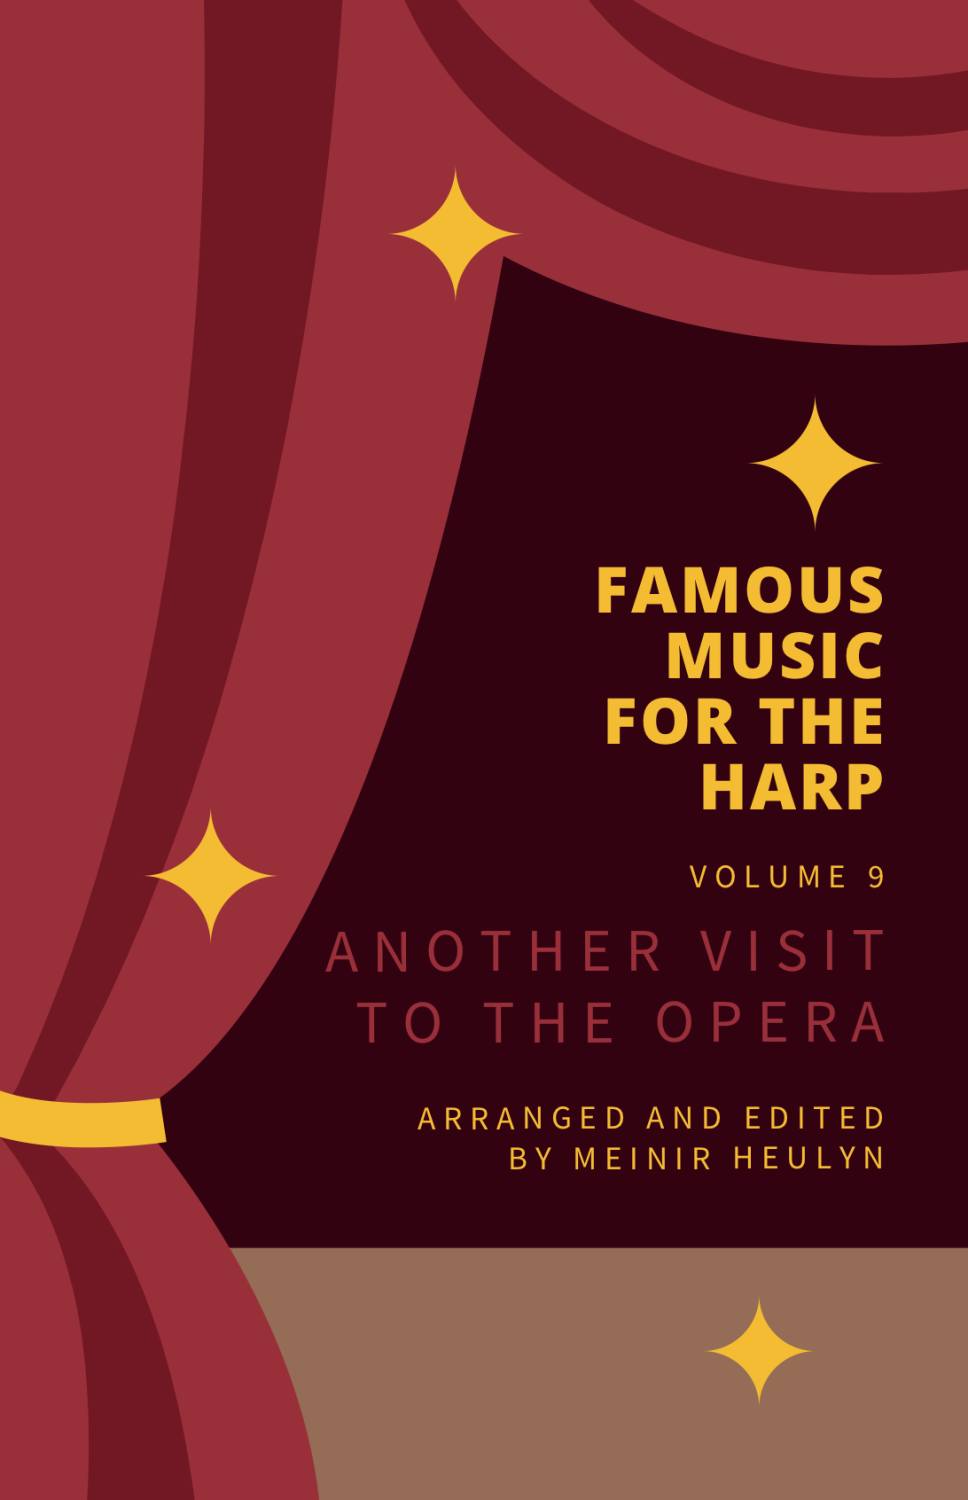 Famous Music for the Harp Volume 9 - Another Visit to the Opera - Arr. Mein